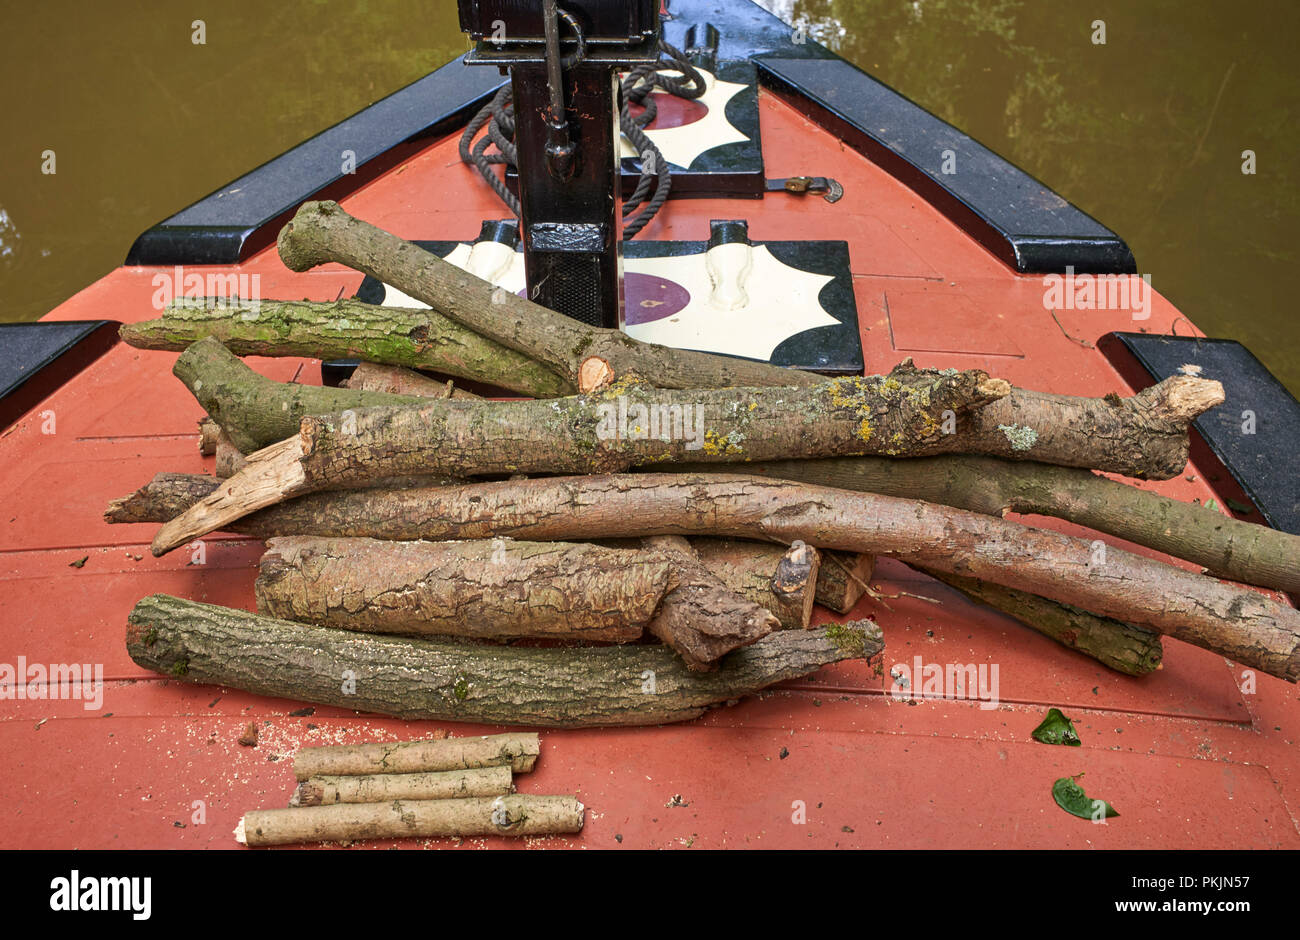 Collecting fallen wood in the summer is an easy way to stock up on wood for winter if you are on a narrowboat - Stock Image